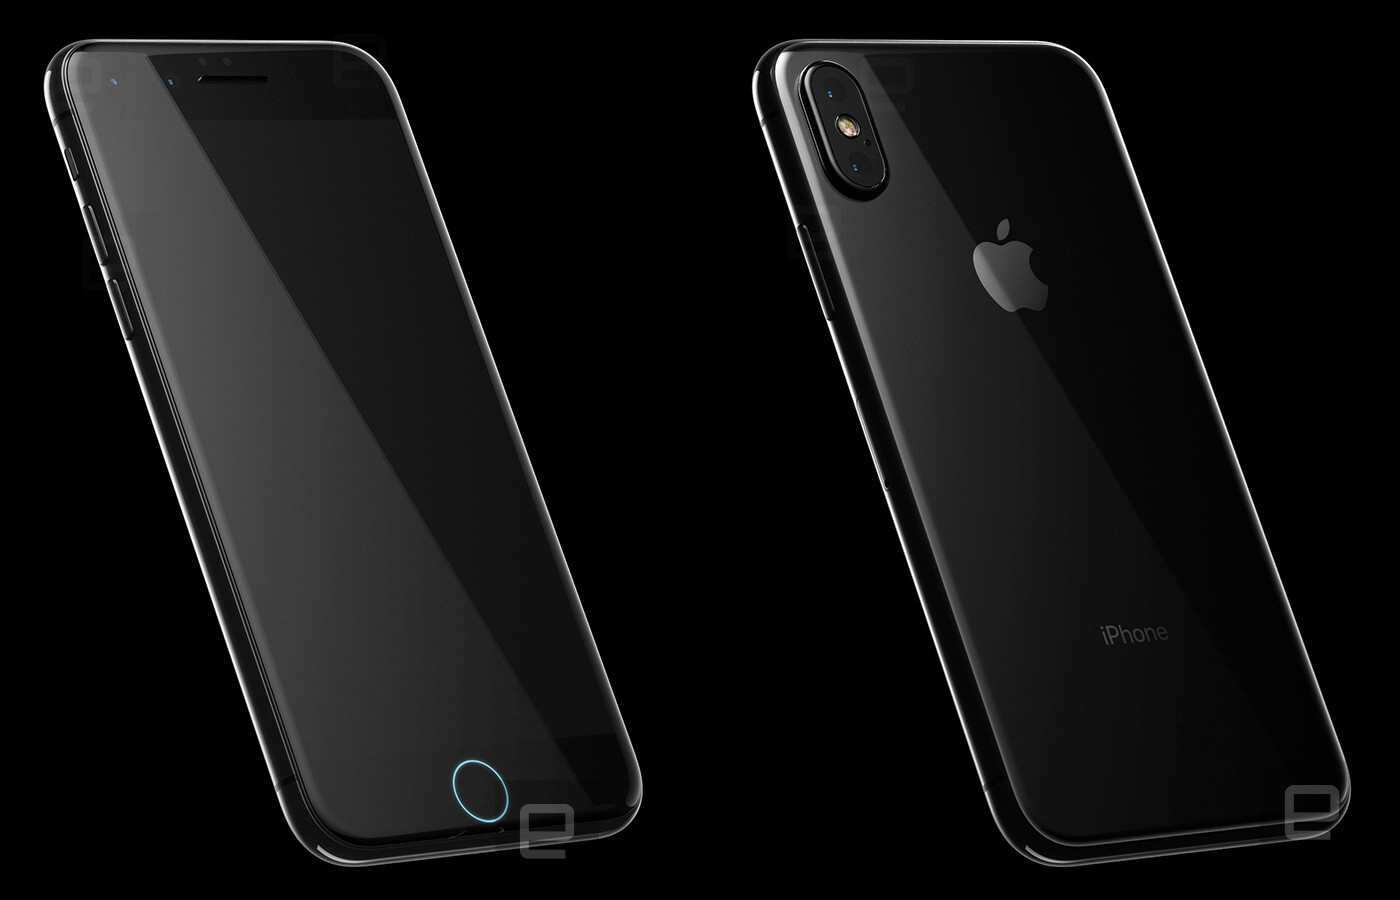 new iphone 8 renders reveal apple is switching to glass design vertical dual camera and two. Black Bedroom Furniture Sets. Home Design Ideas